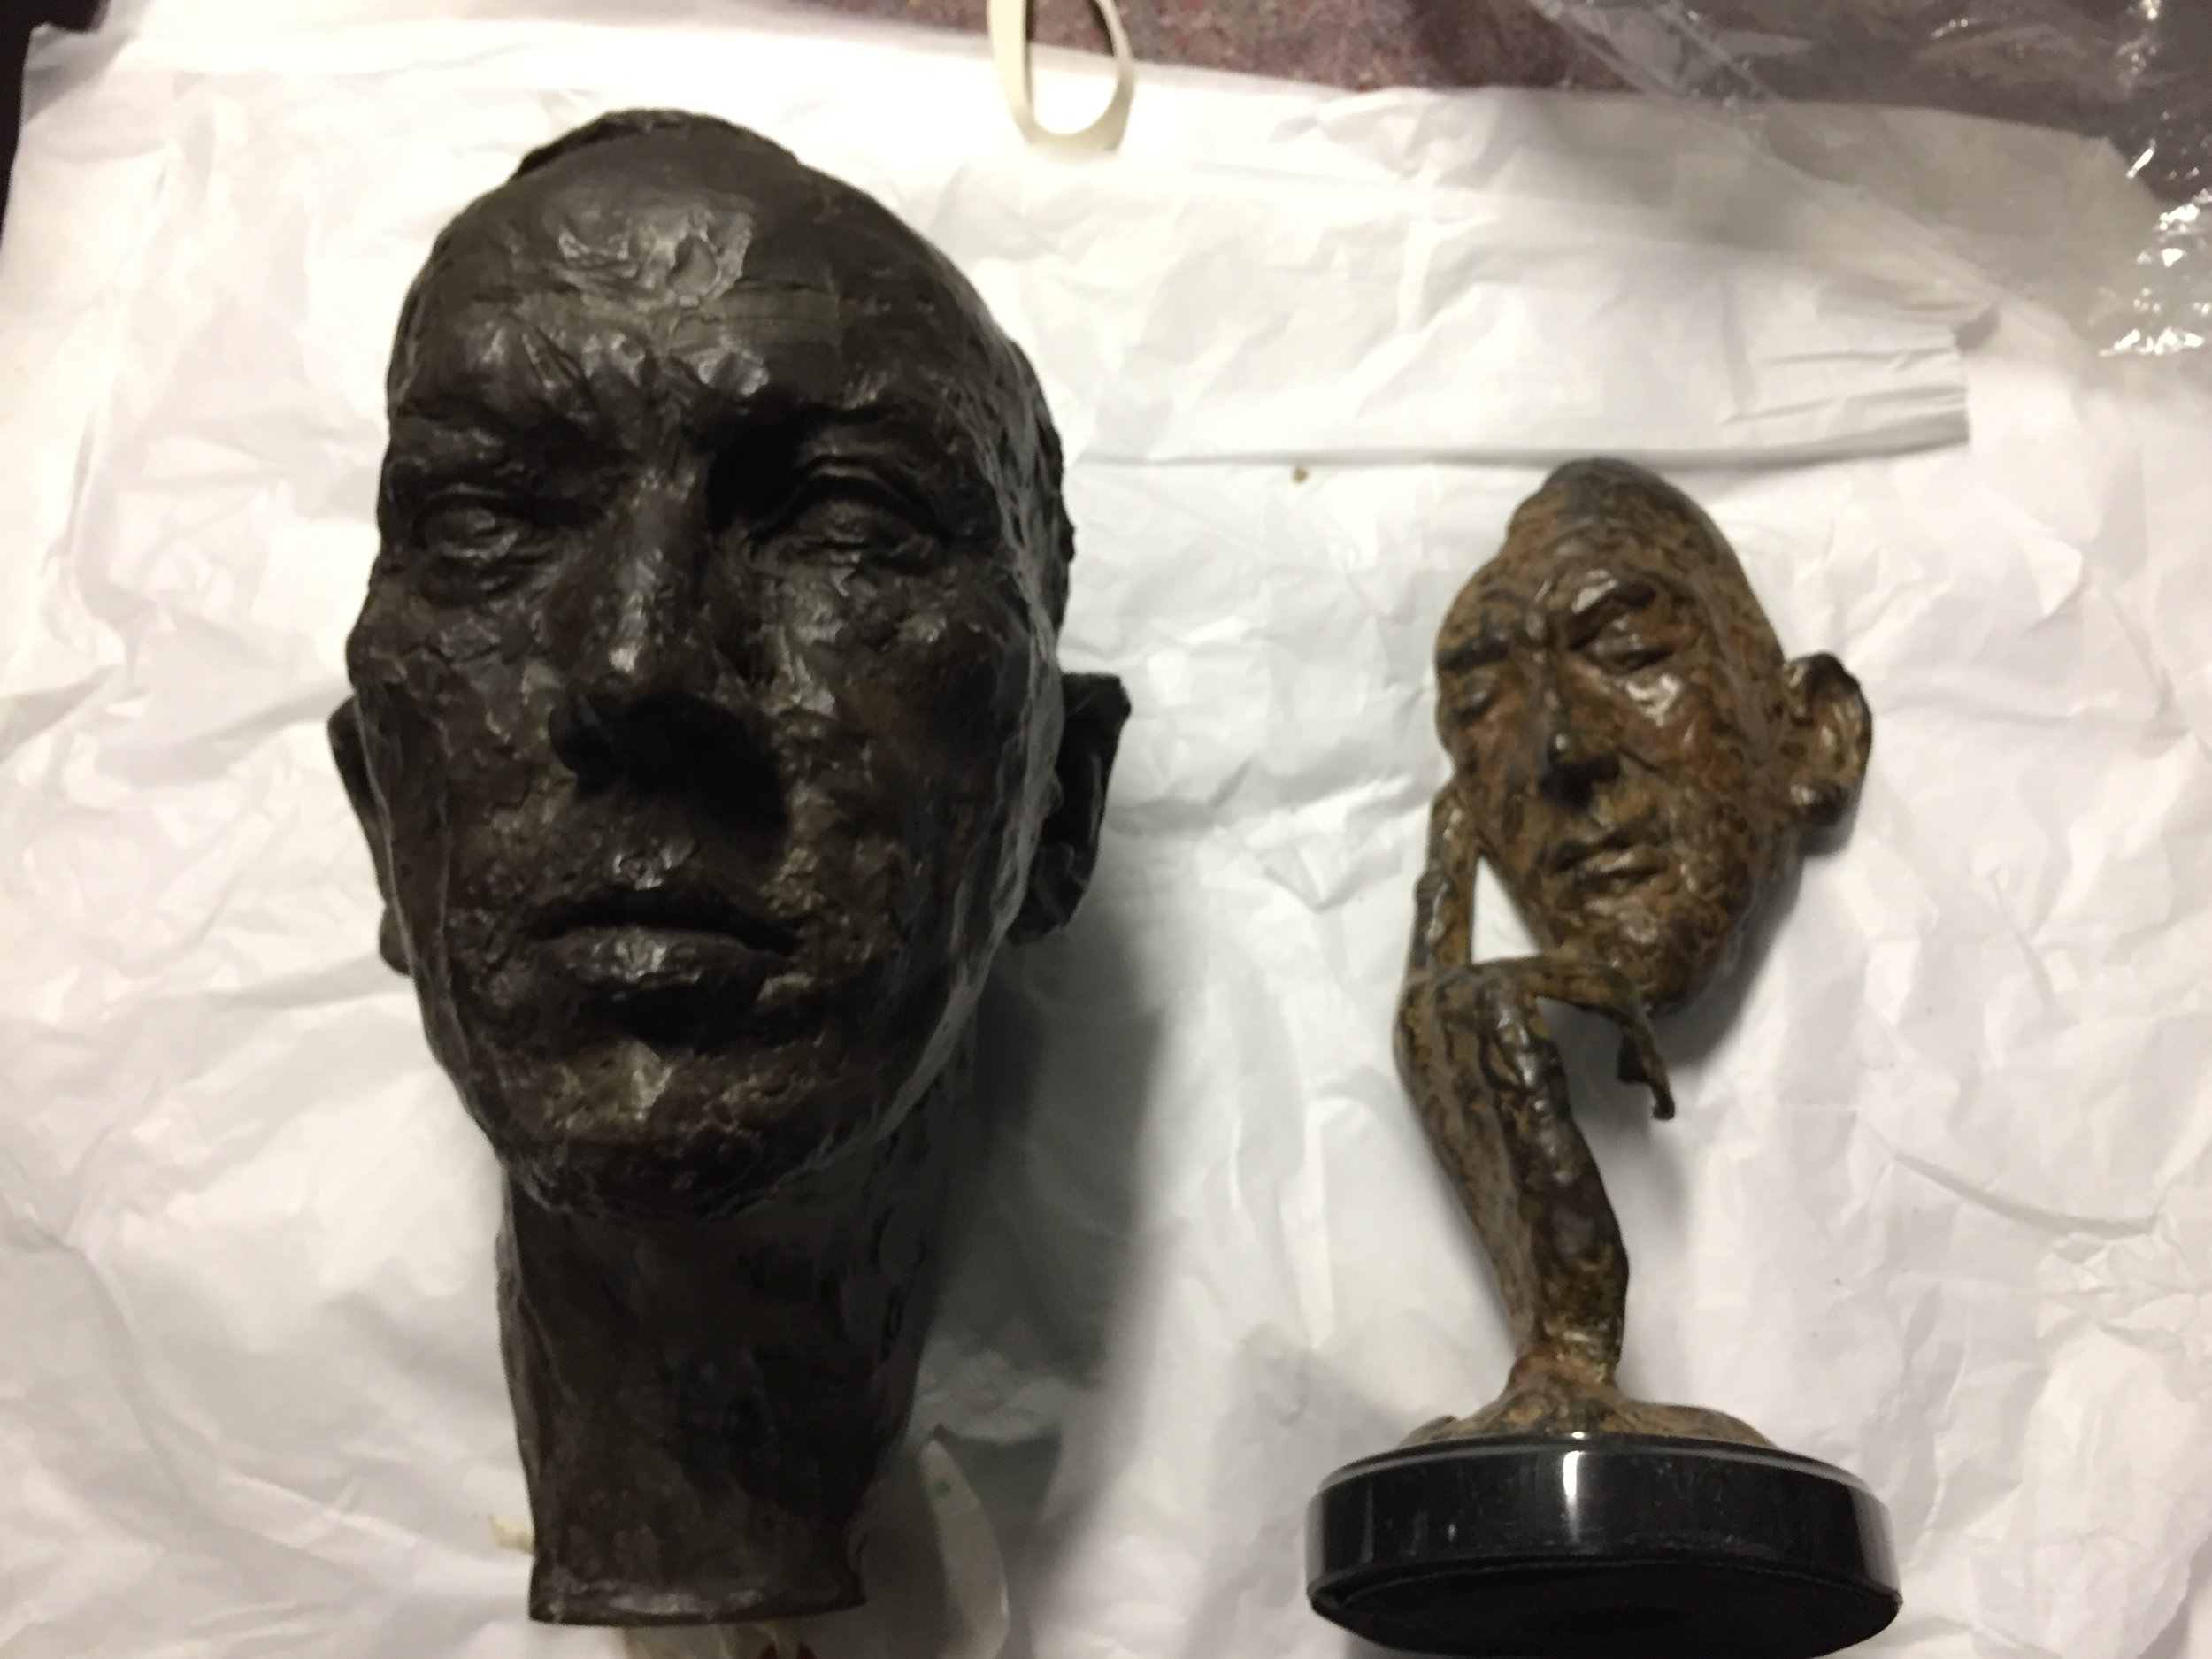 Comparison of Busts at National Portrait Gallery Archive